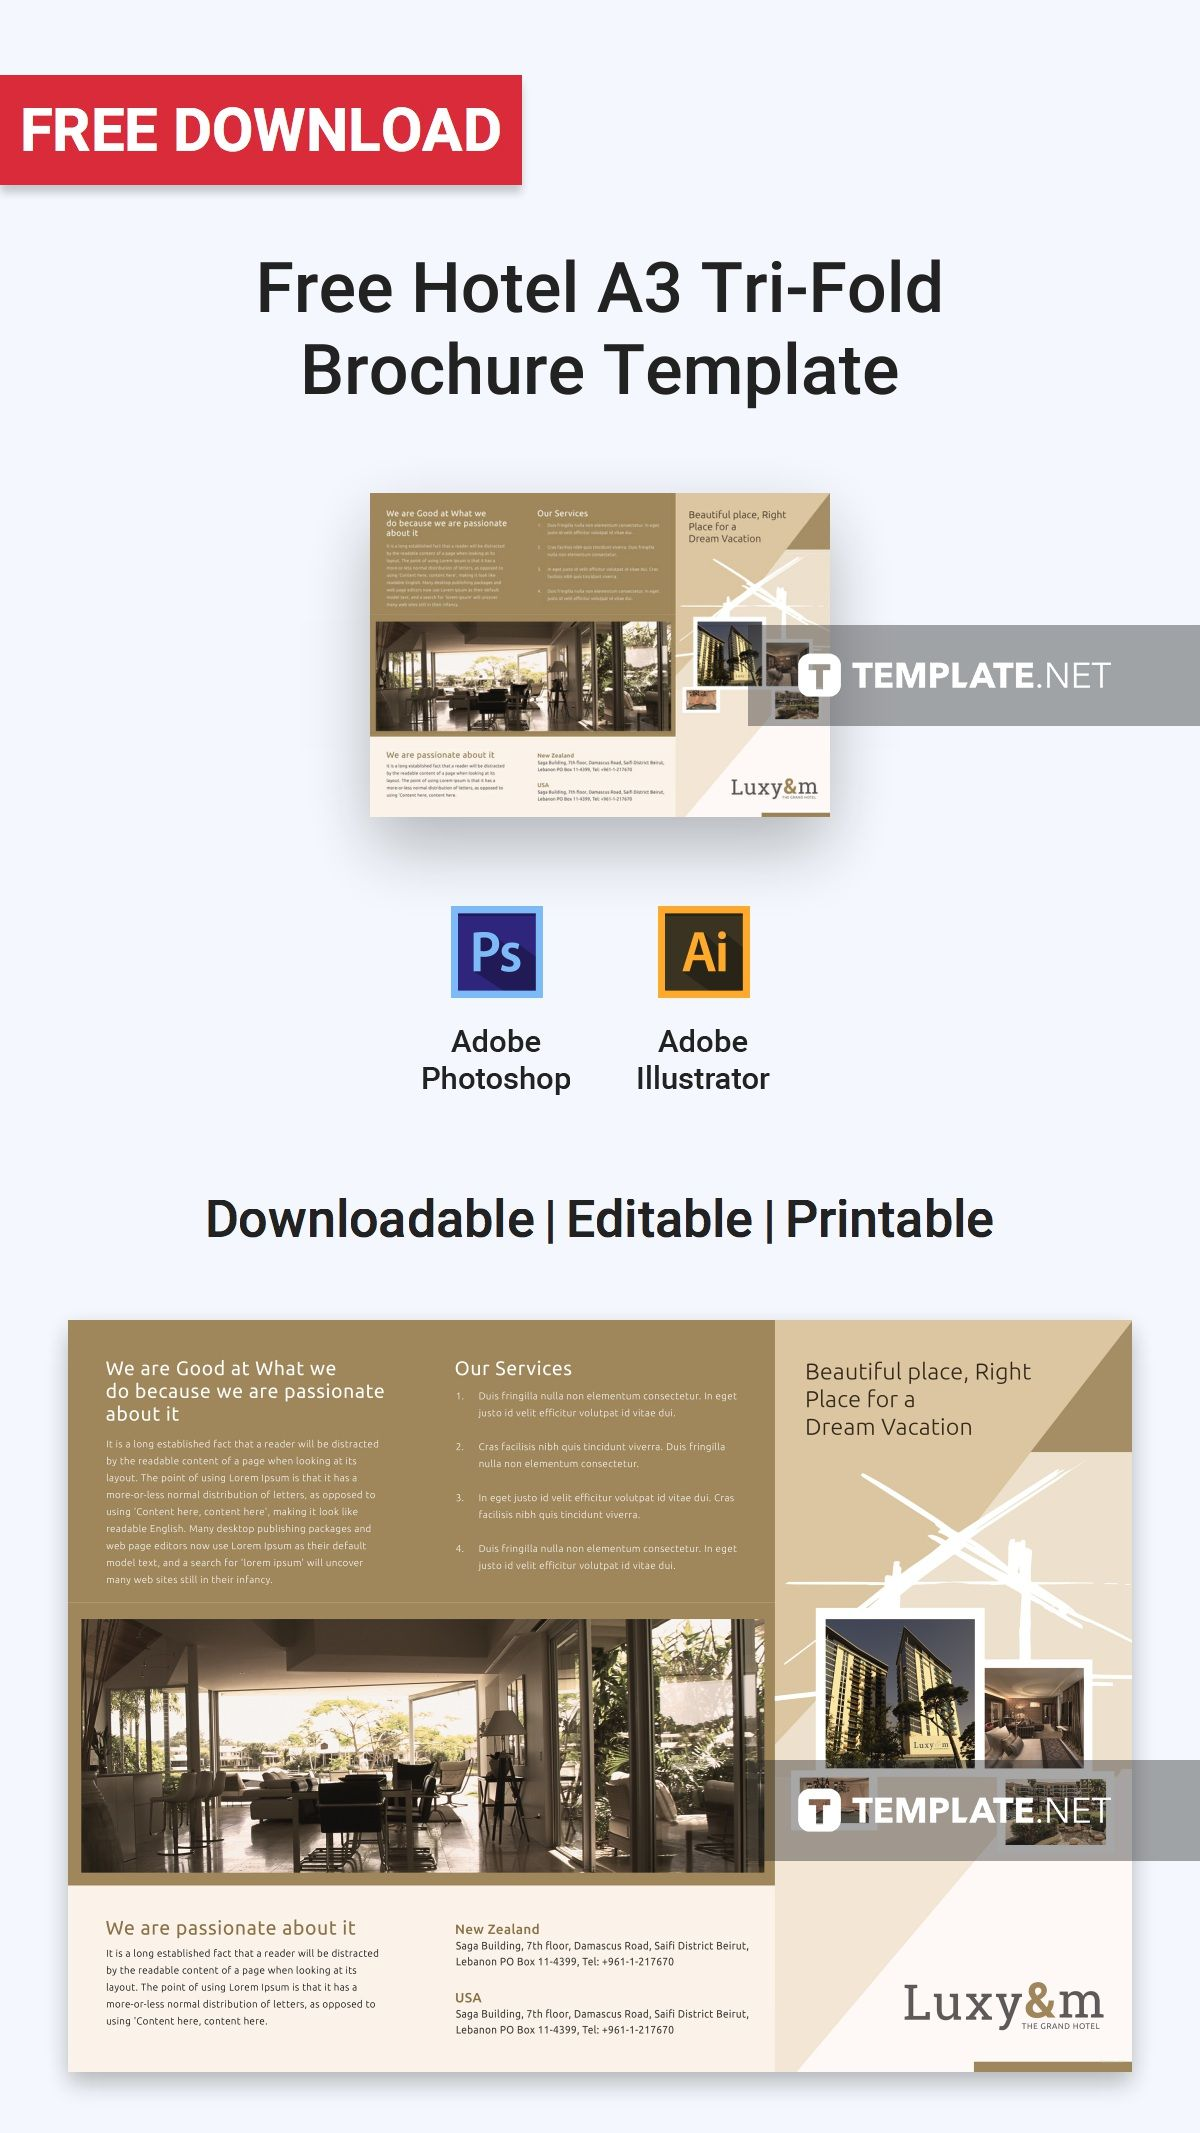 Free Hotel A3 Tri Fold Brochure Template Word Doc Psd Apple Mac Pages Illustrator Publisher Brochure Template Brochure Design Template Brochure